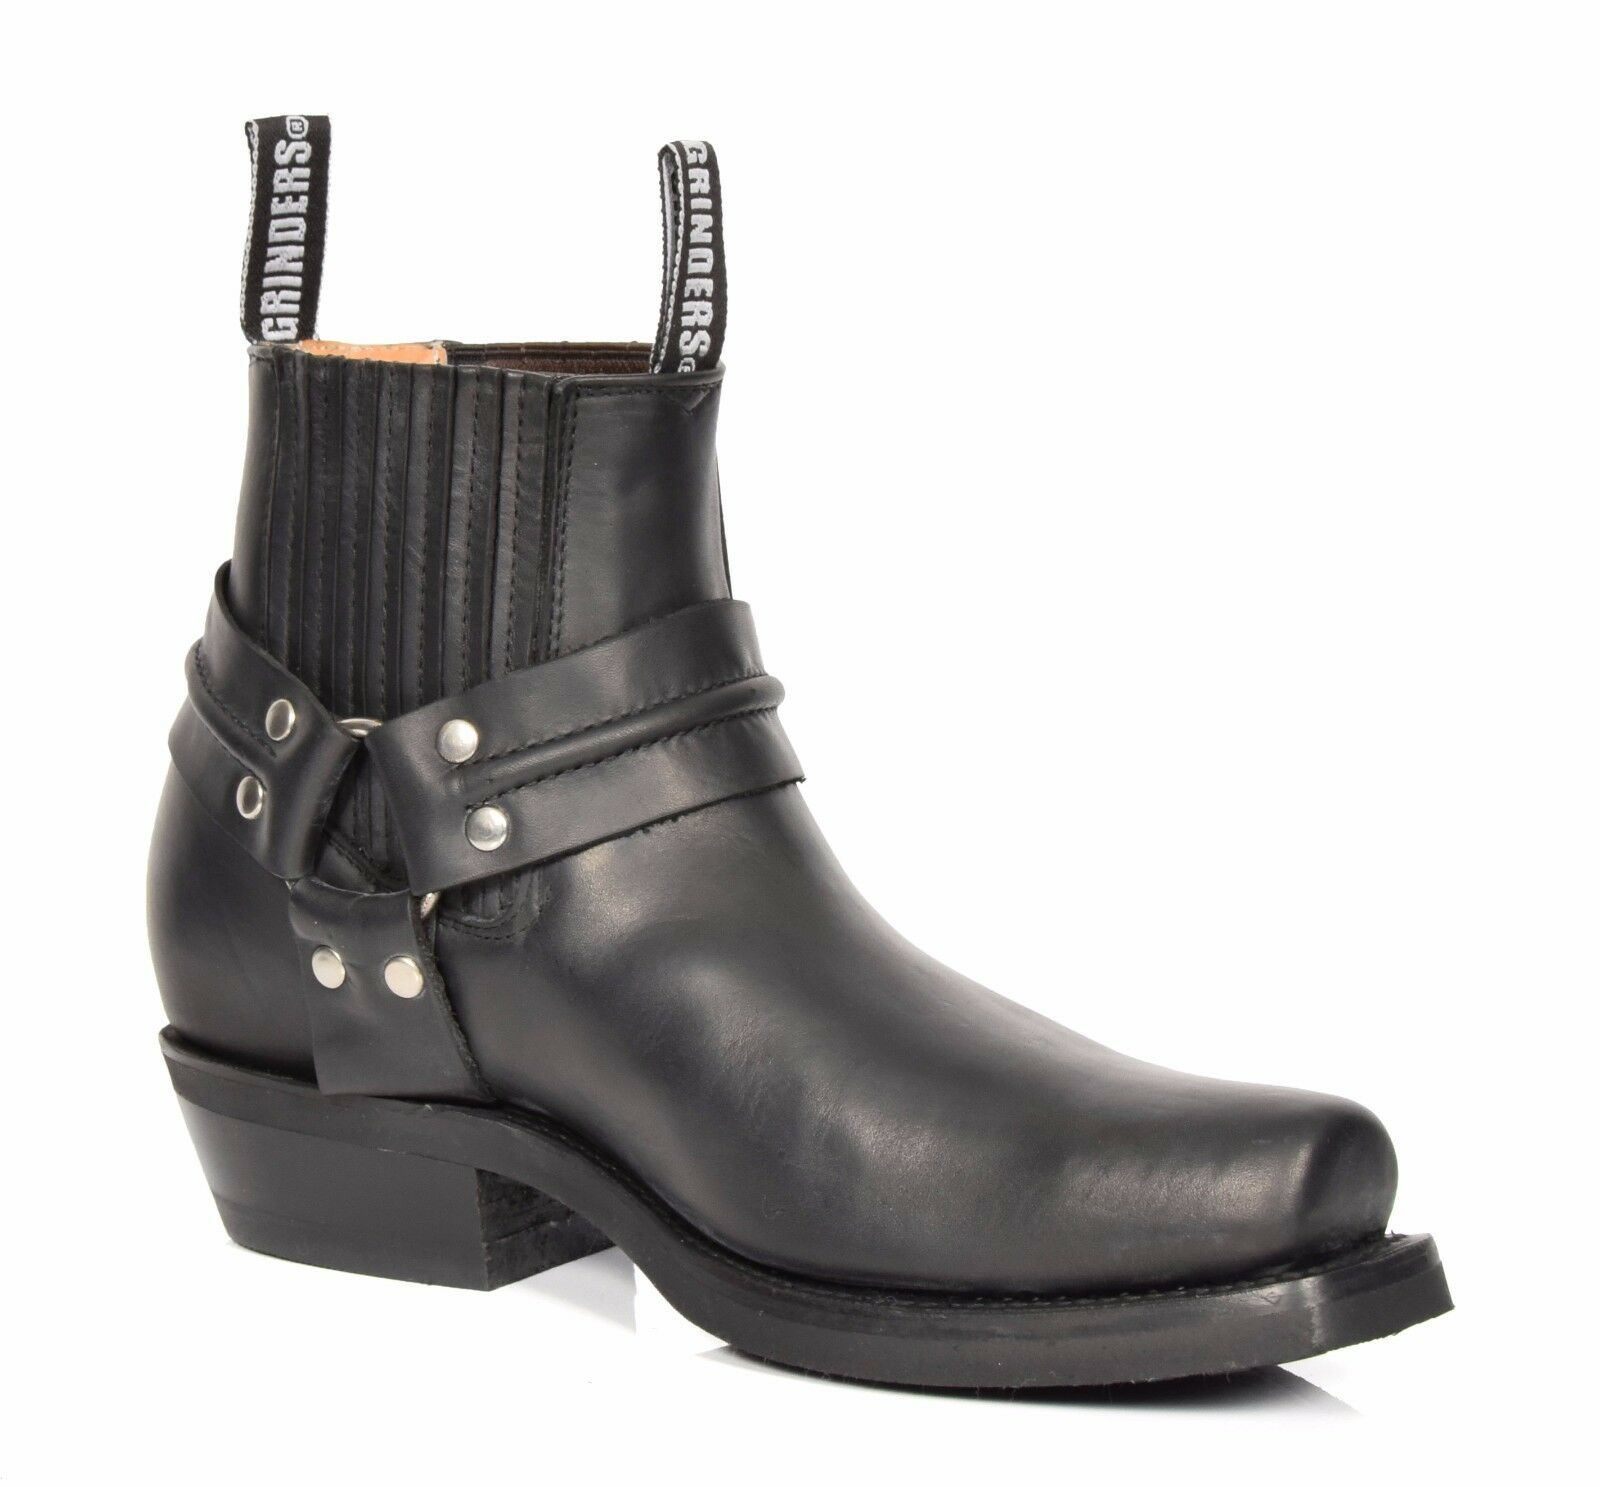 Real Leather Chelsea Boots Cowboy Biker Style Slip On Square Toe shoes Black